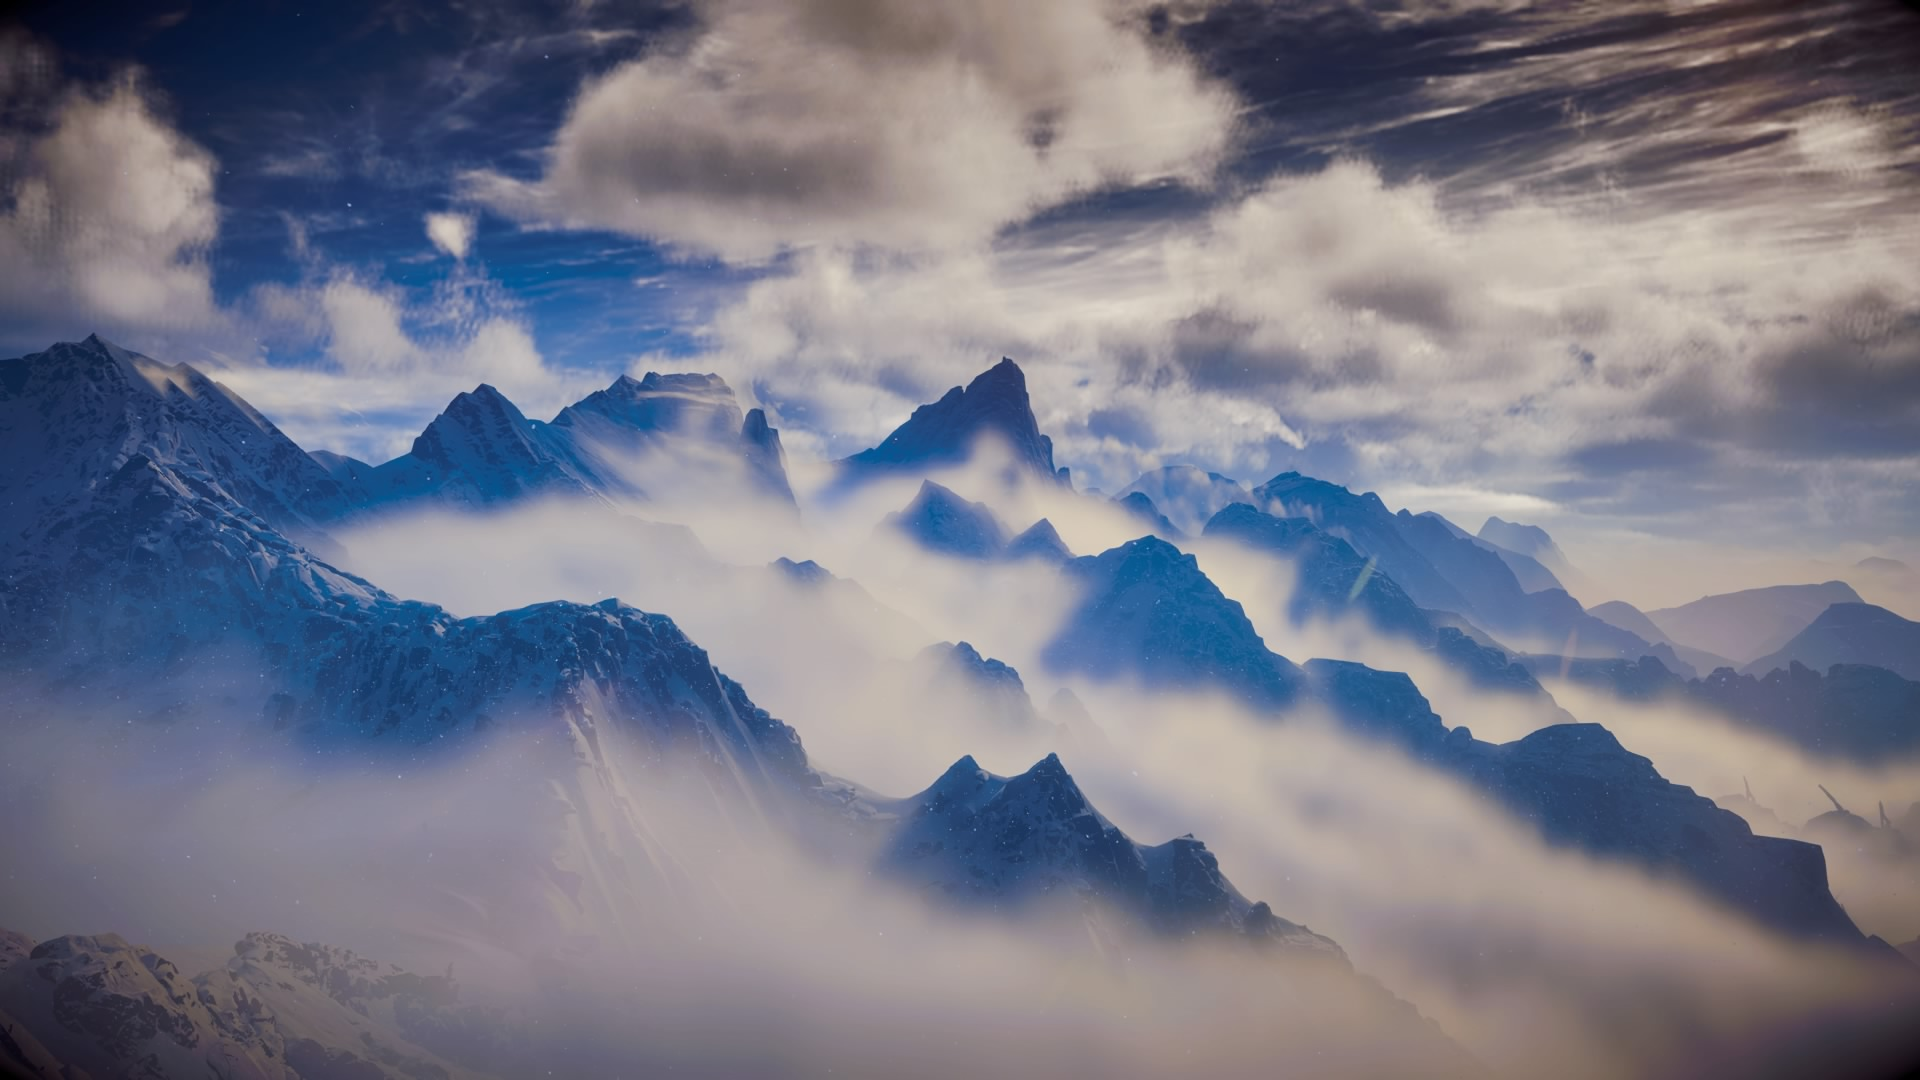 photography, mountains, sky, clouds, fog, mist, peaks, light, bright, photograph, picture